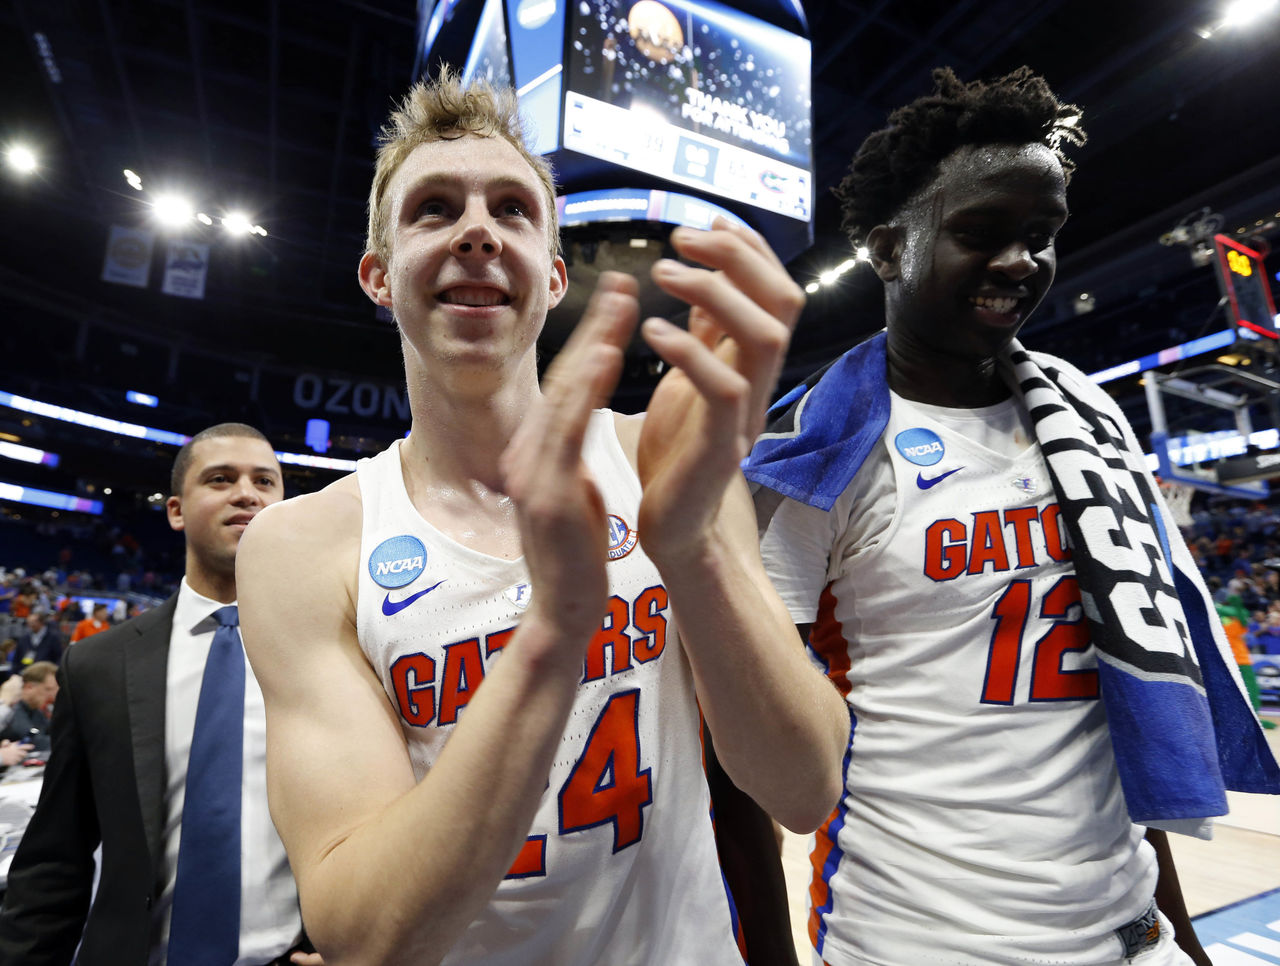 Cropped 2017 03 19t025858z 824197762 nocid rtrmadp 3 ncaa basketball ncaa tournament second round florida vs virginia